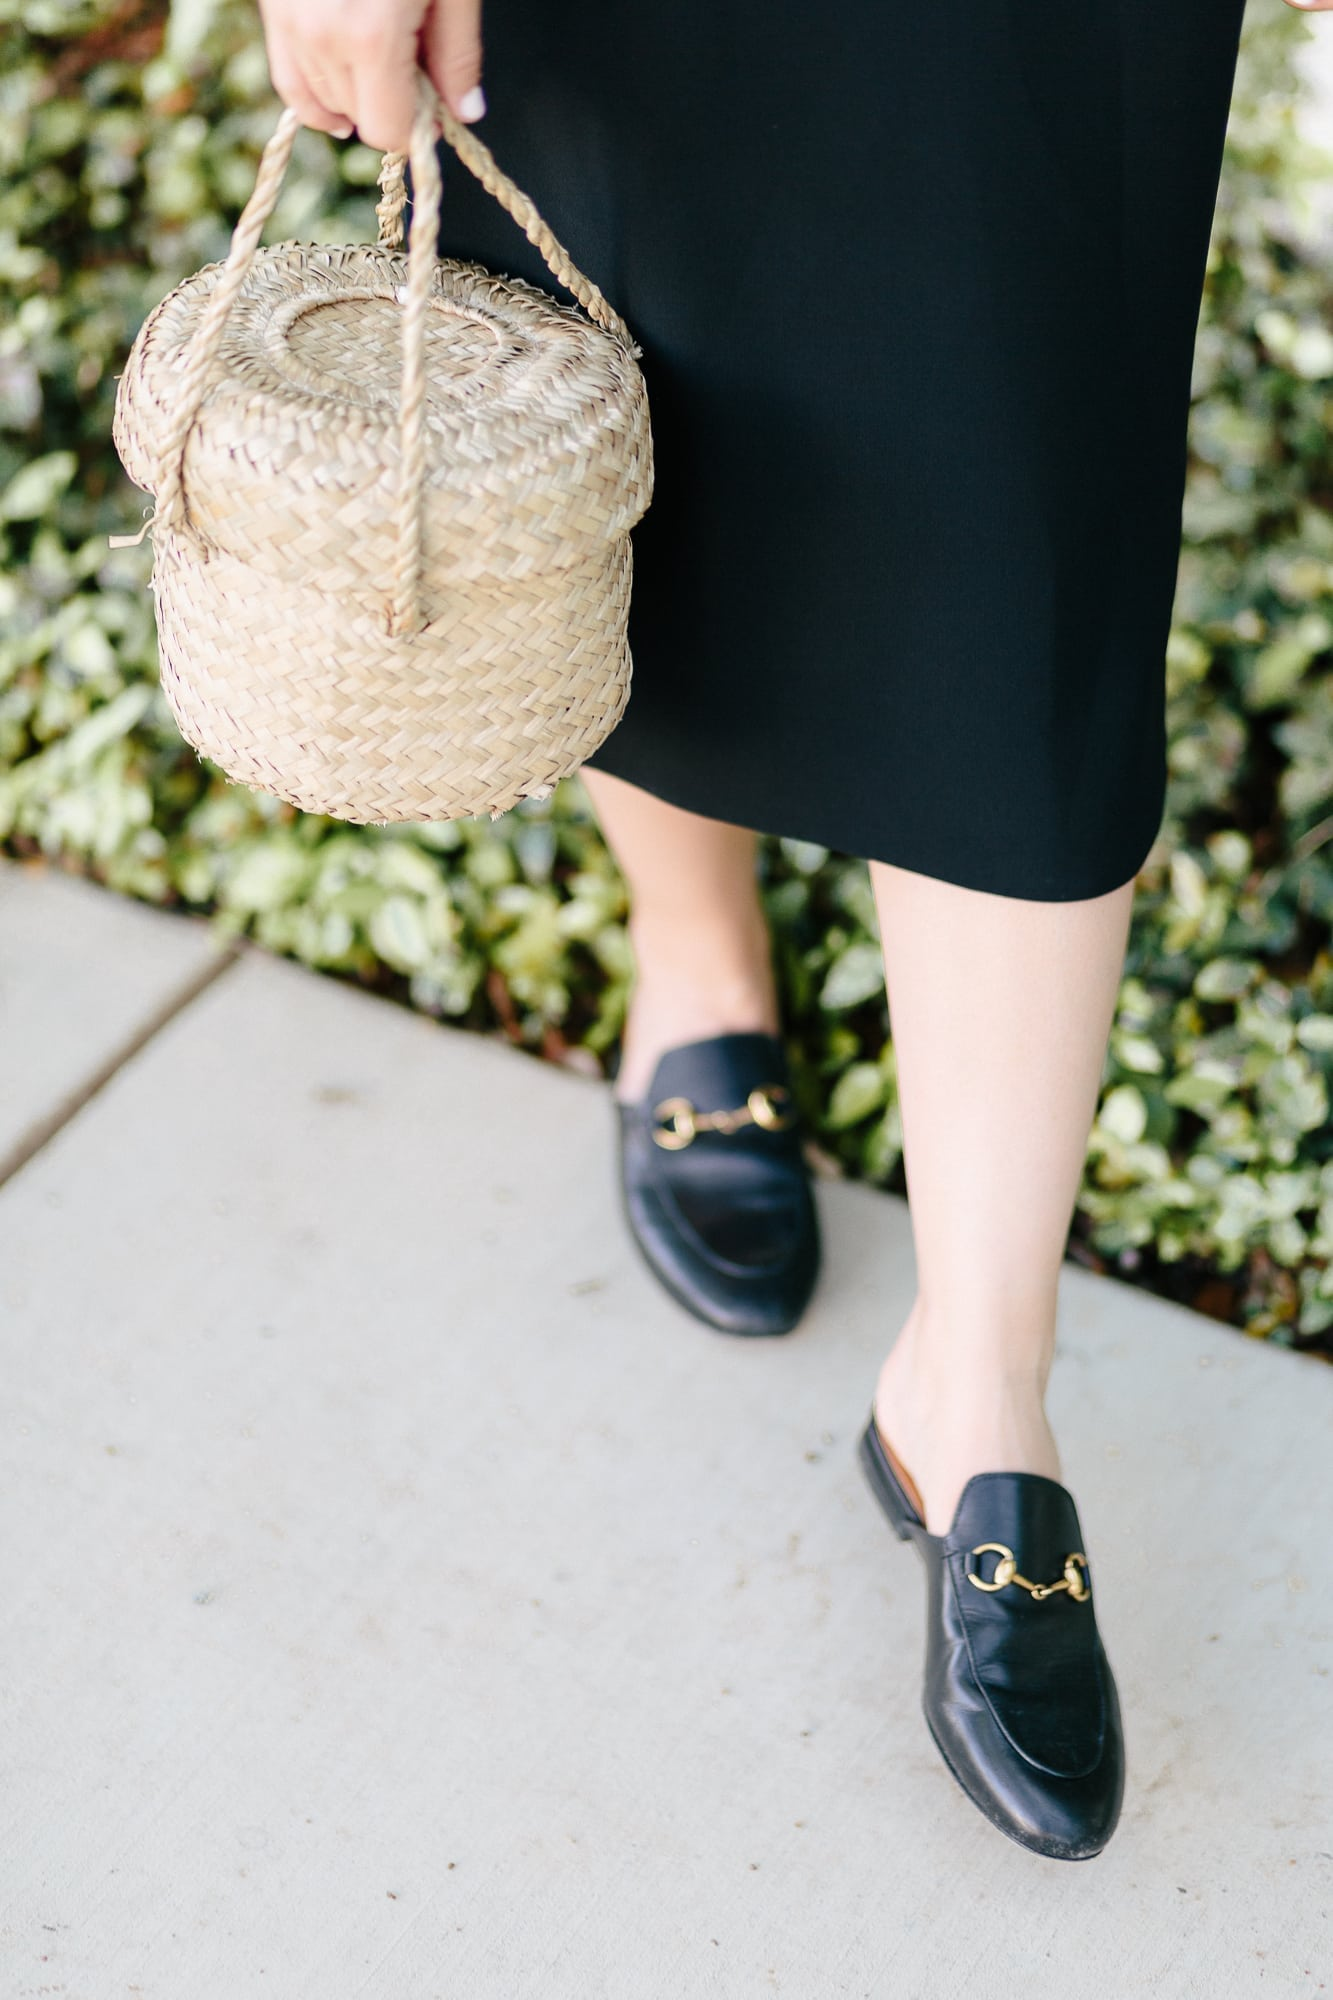 Gucci Loafers and Basket Bag